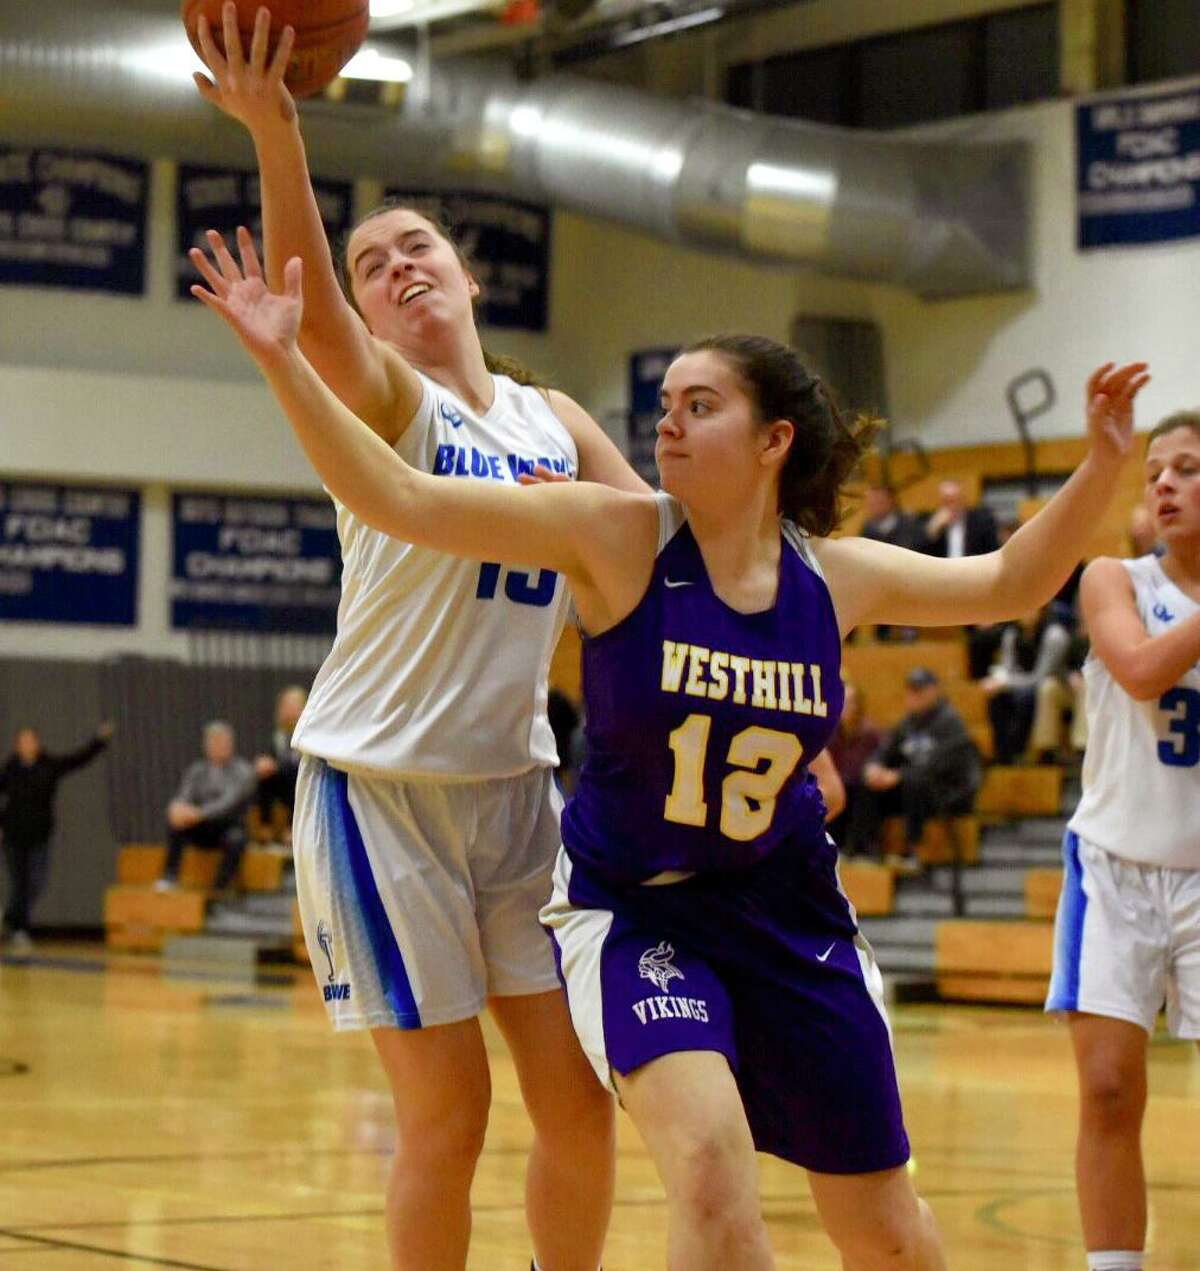 Darien's Shea Dolce (13) and Westhill's Caroline Kollar (12) battle for a rebound during a girls basketball game at Darien High School on Monday, Feb. 3, 2020.